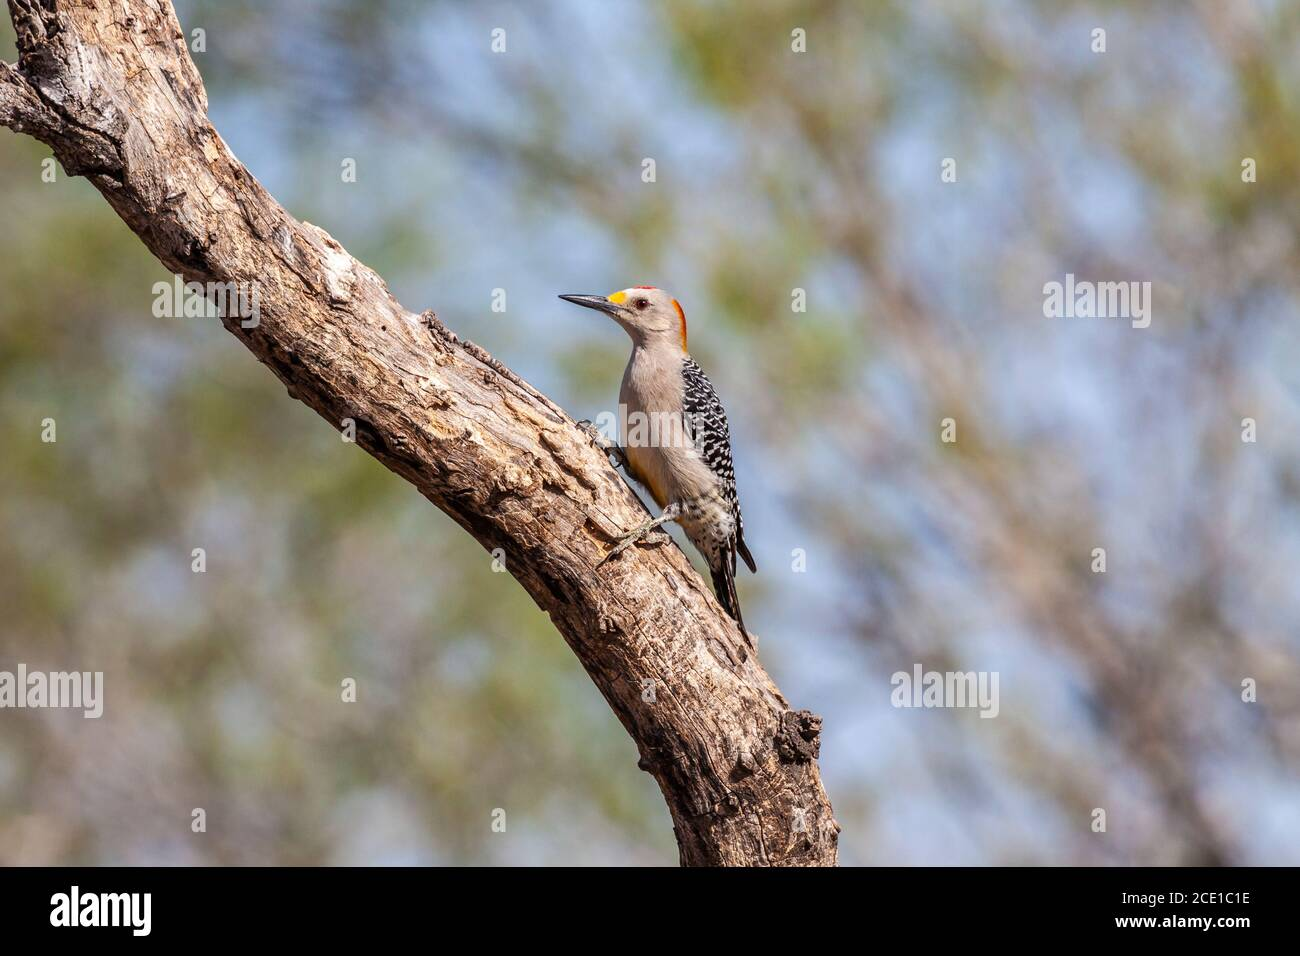 Male Golden-fronted Woodpecker, Melanerpes aurifrons, at the Javelina-Martin ranch and refuge near McAllen, Texas, in the Rio Grande Valley. Stock Photo